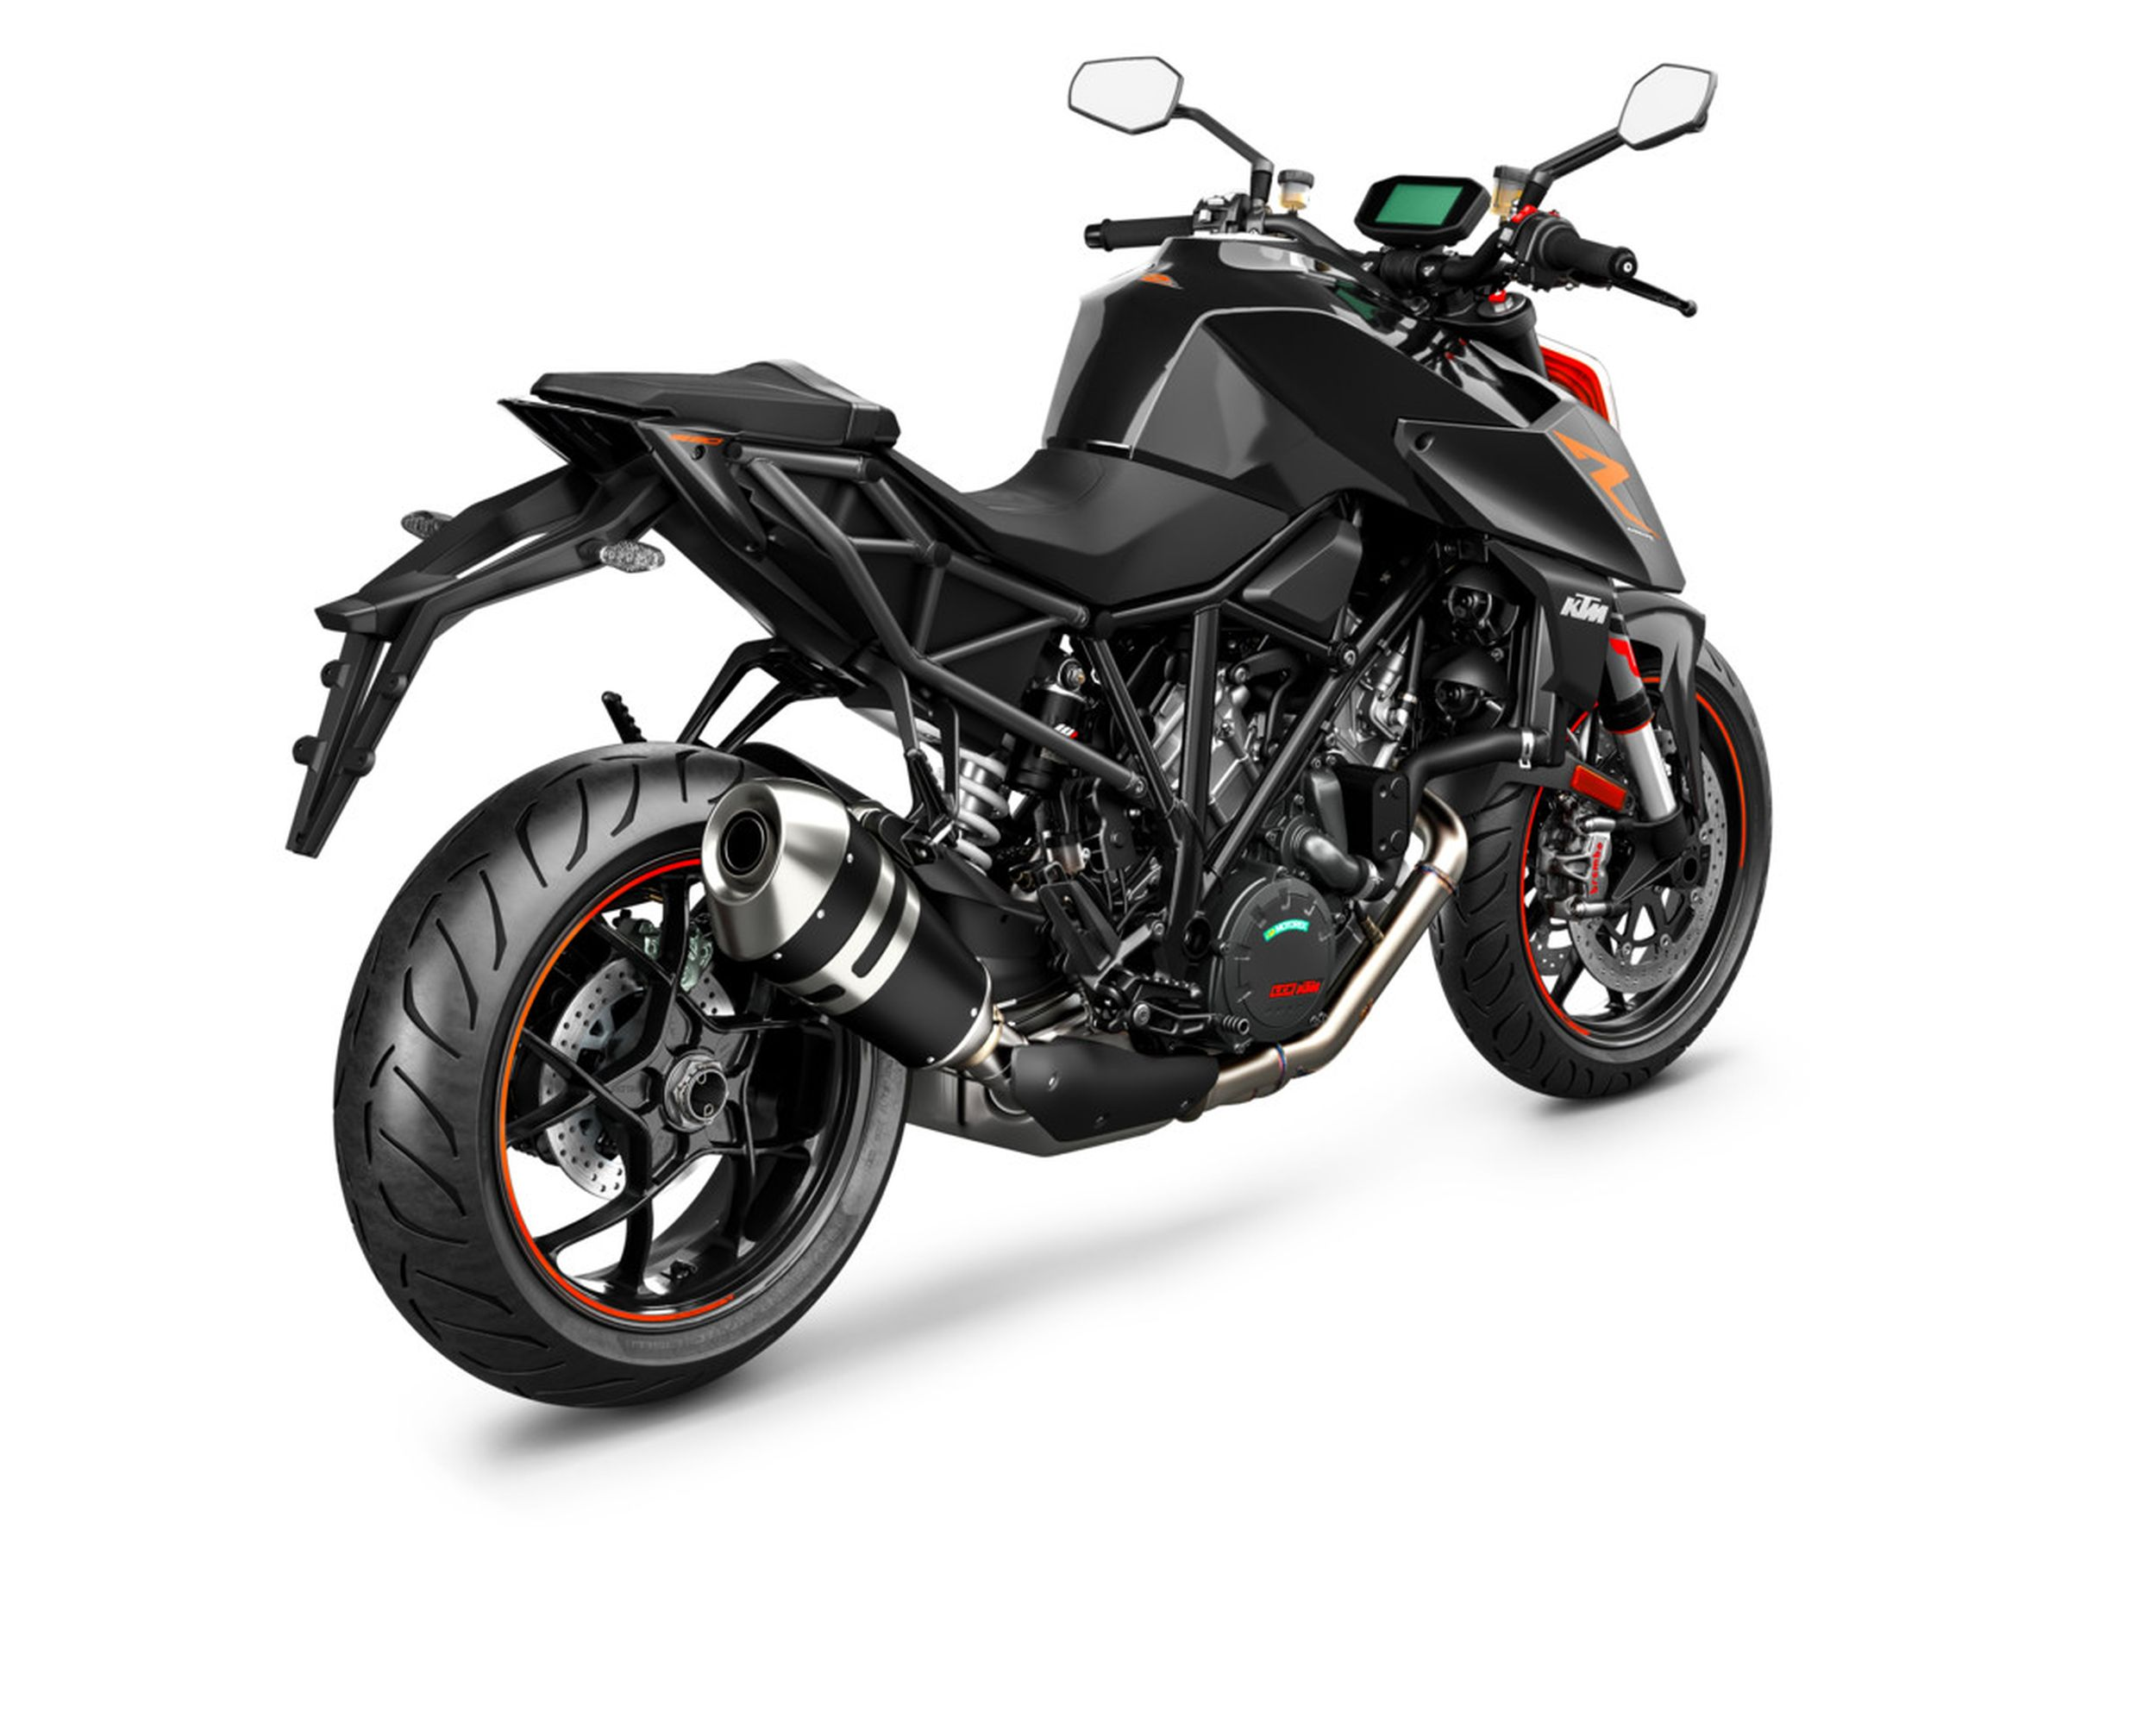 ktm 1290 super duke r test t ff 39 s bilder technische daten. Black Bedroom Furniture Sets. Home Design Ideas